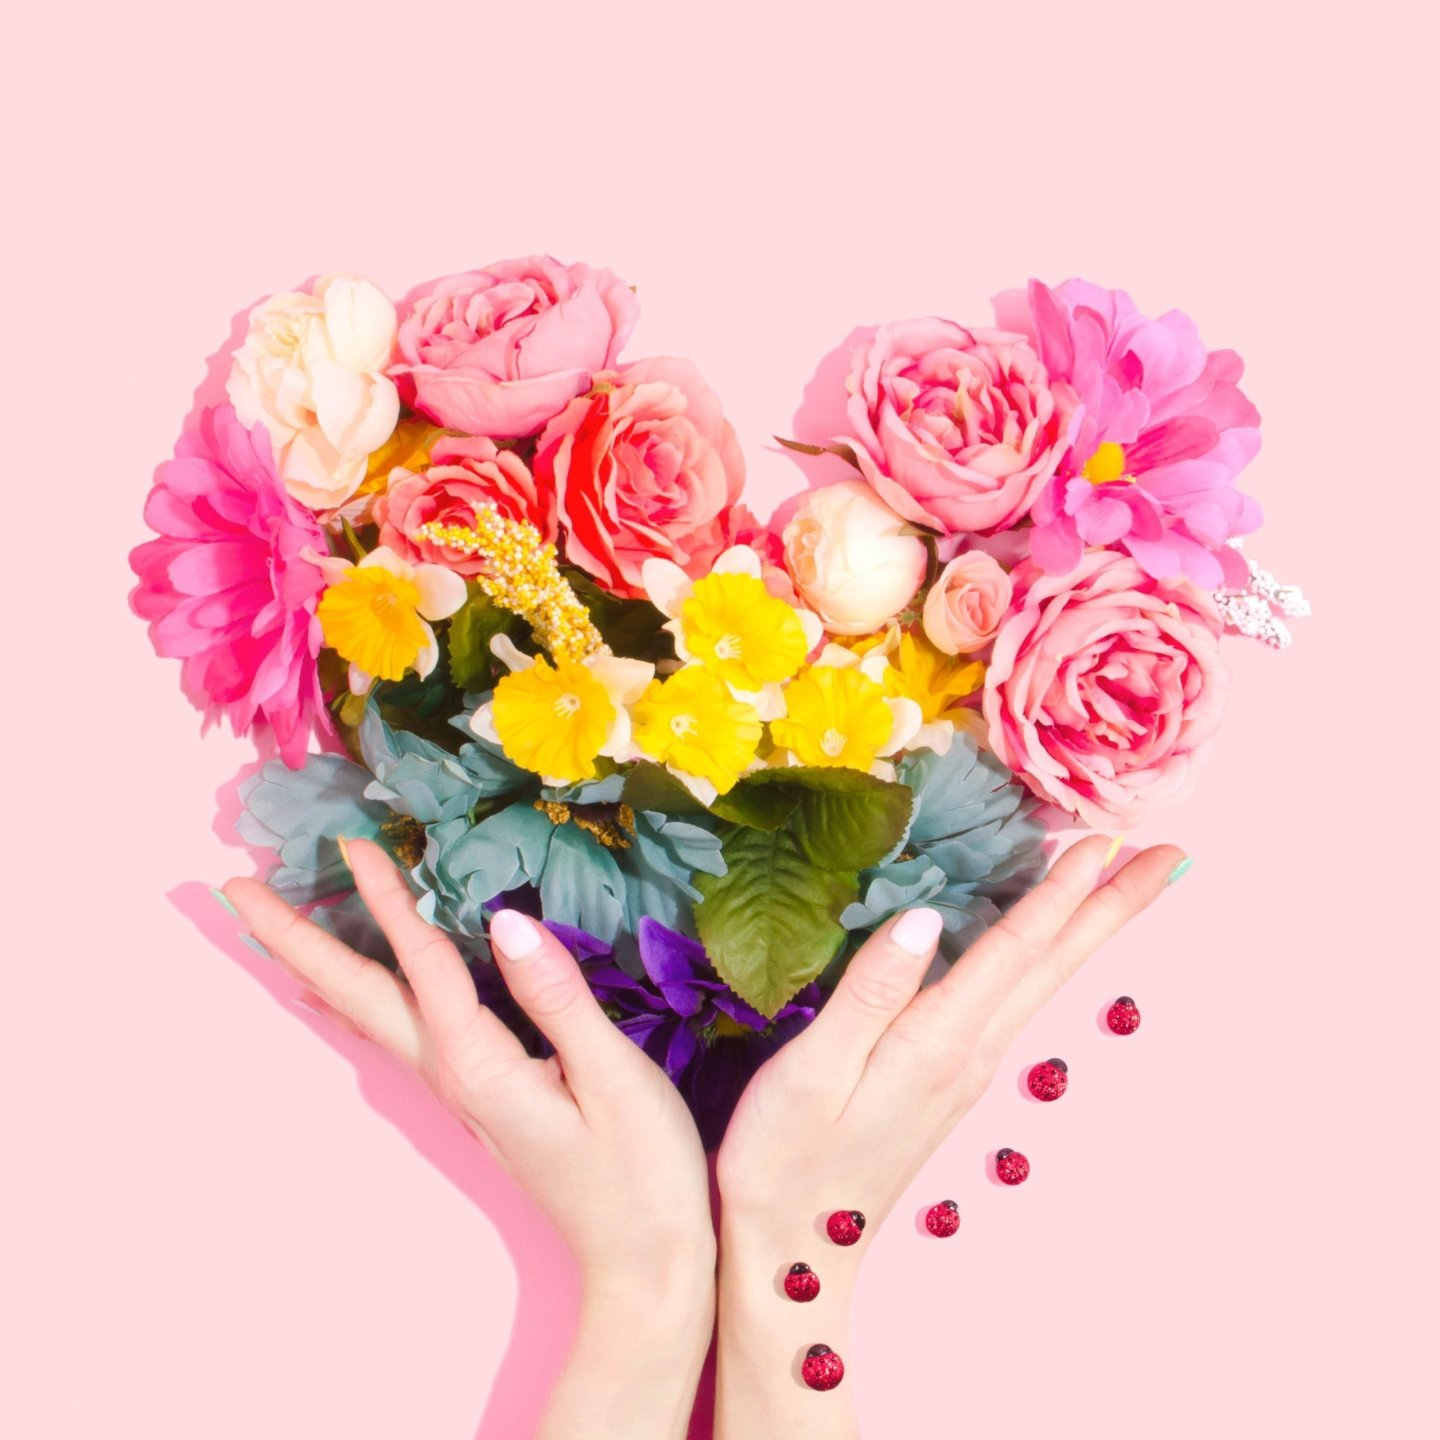 Hands holding an assortment of love shaped flowers